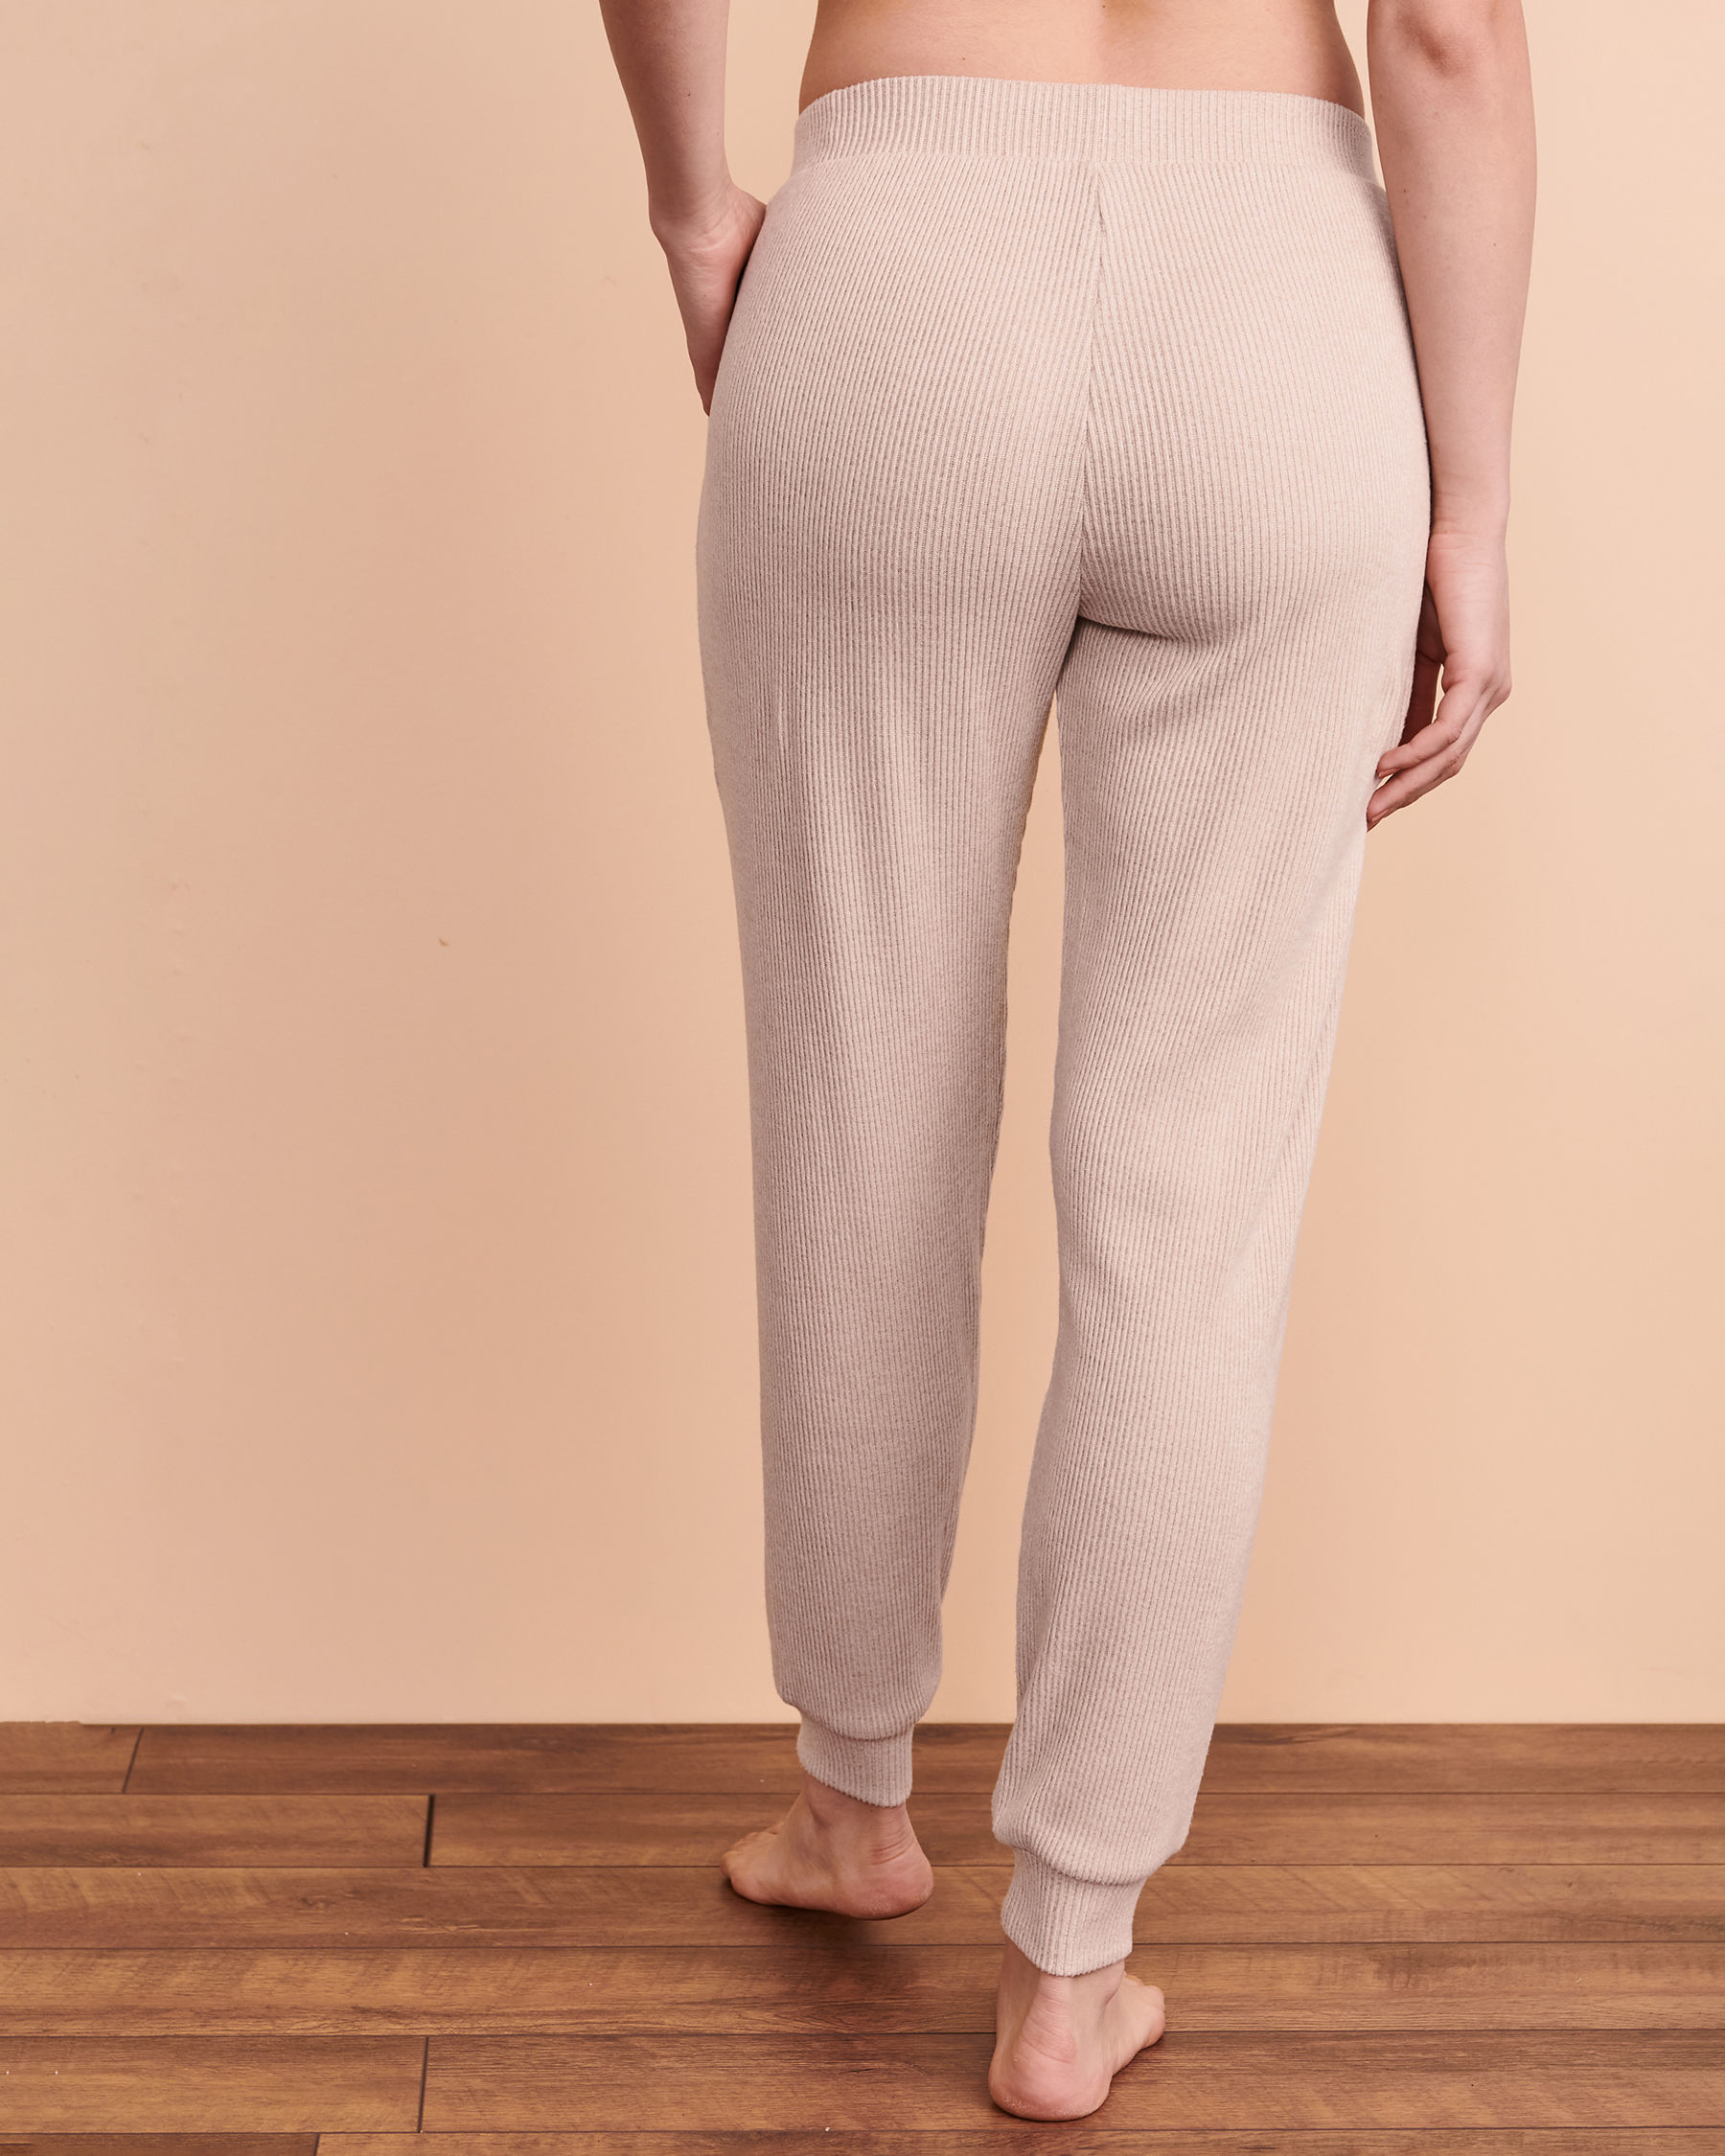 TURQUOISE COUTURE Ribbed Lounge Pant Light beige 02200014 - View3